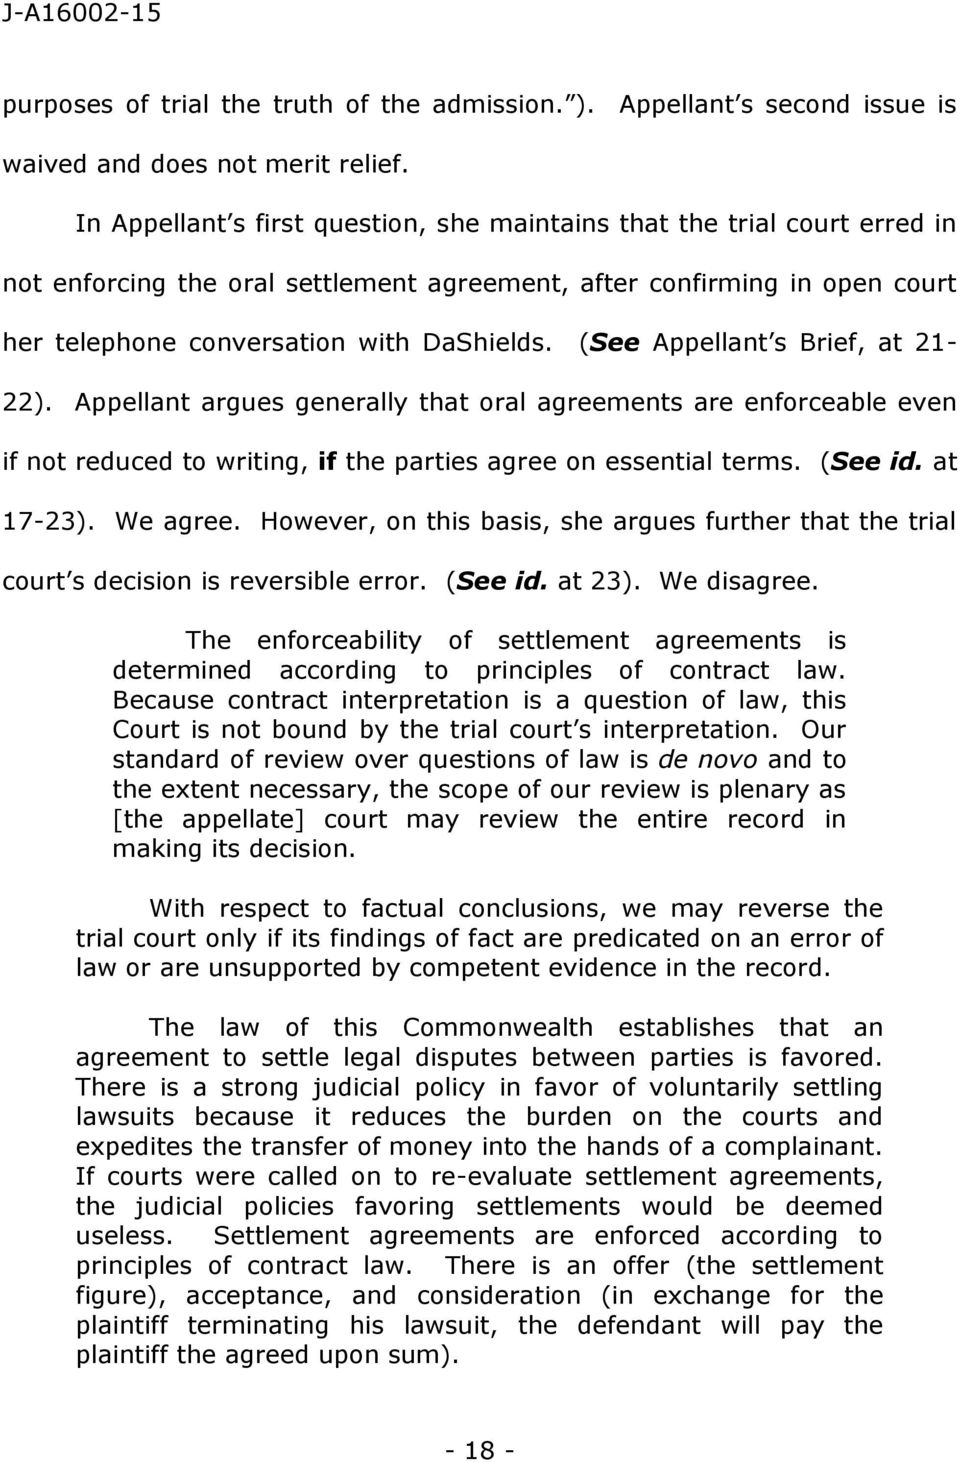 (See Appellant s Brief, at 21-22). Appellant argues generally that oral agreements are enforceable even if not reduced to writing, if the parties agree on essential terms. (See id. at 17-23).